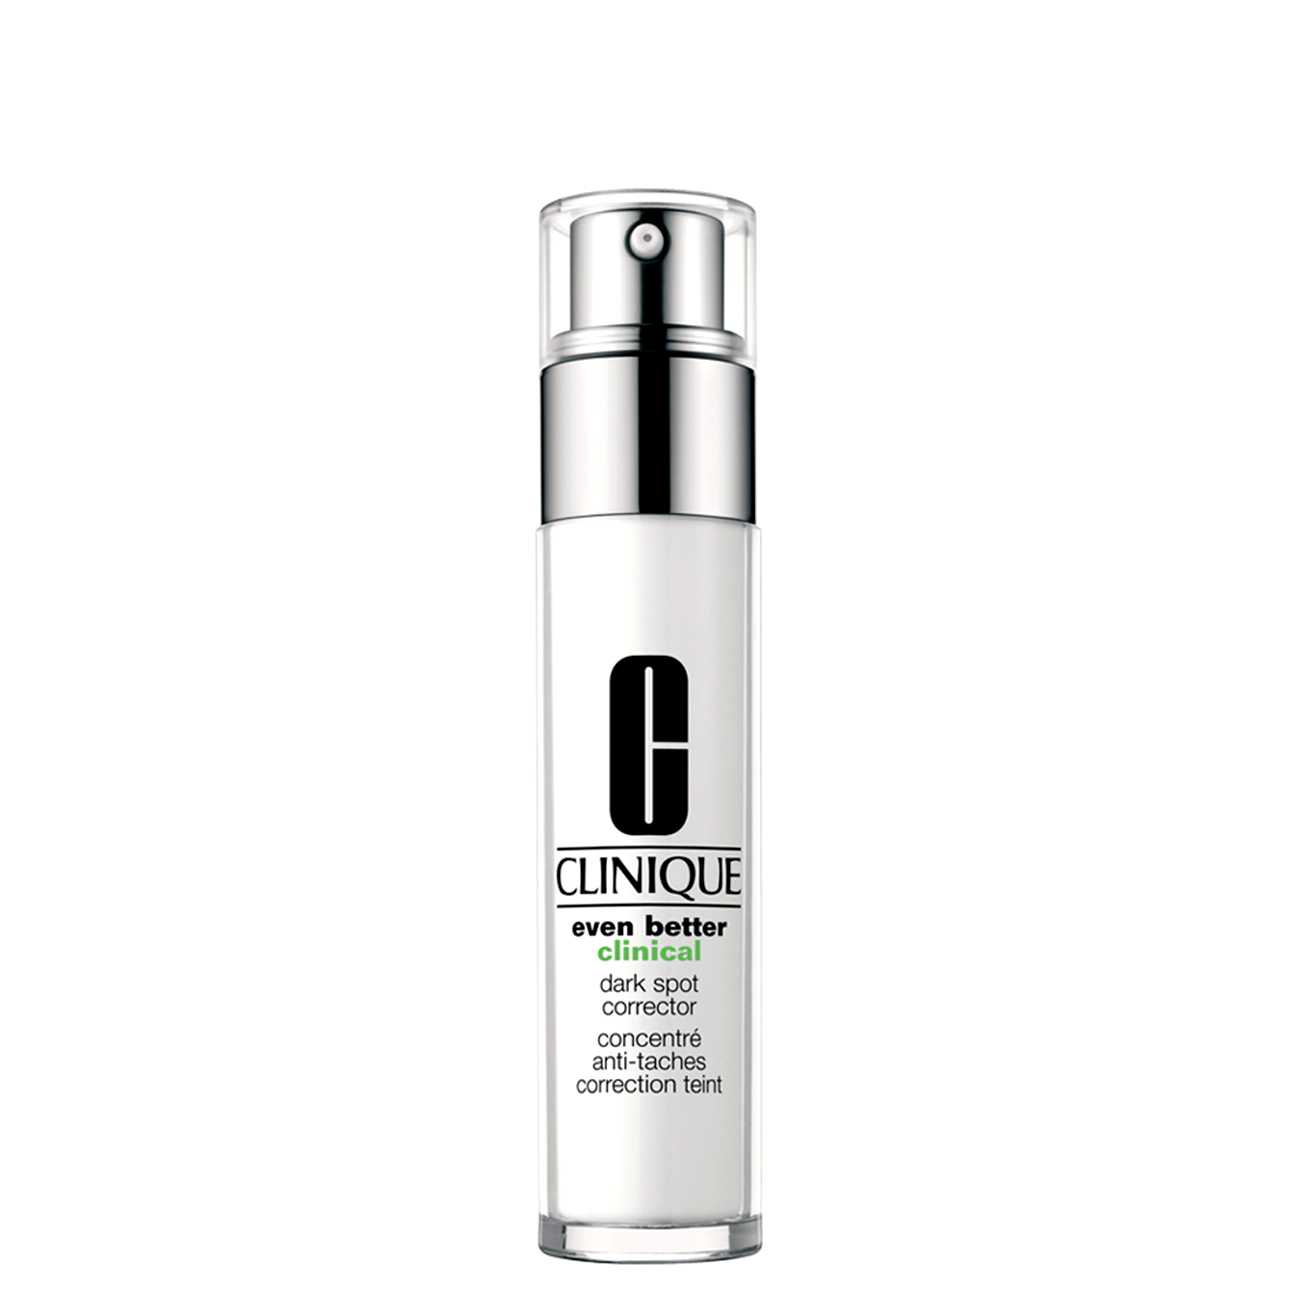 Even Better Clinical Dark Spot Corrector 50 Ml Clinique imagine 2021 bestvalue.eu